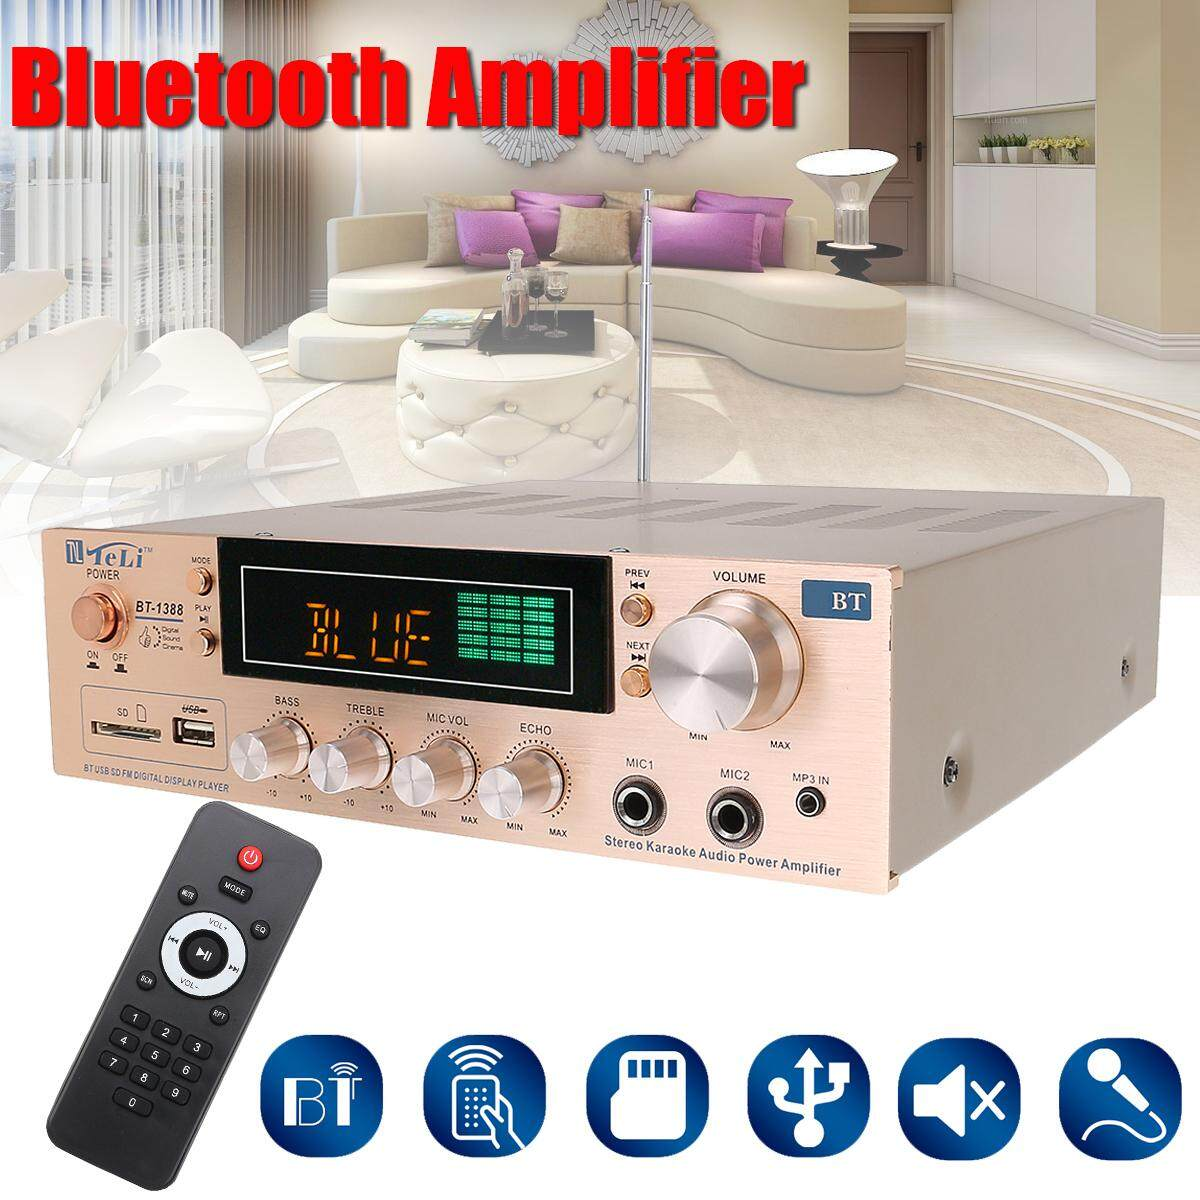 Fitur Easycap Easy Cap Utv007 Usb 2 0 Dvr 1 Channel Support Android 20 Capture Bluetooth 800w Home Power Stereo Amplifier Fm Sd